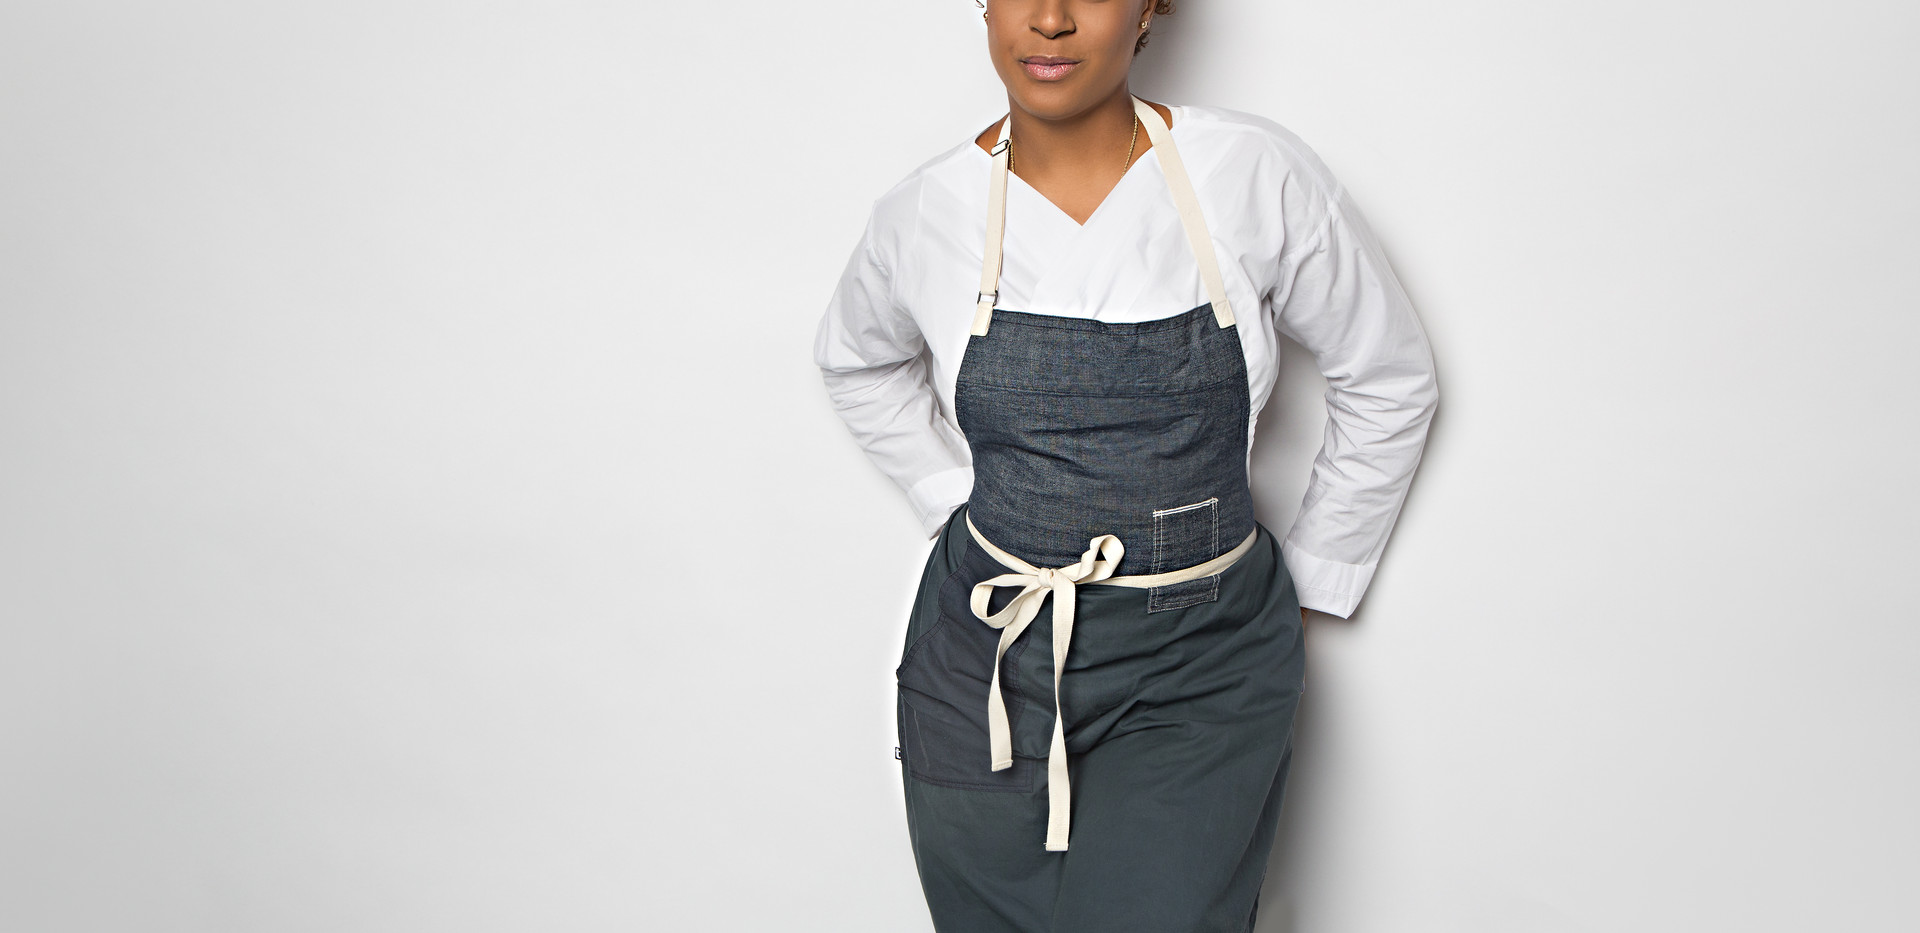 ESSENCE- Black Women Chefs You Ought to Know